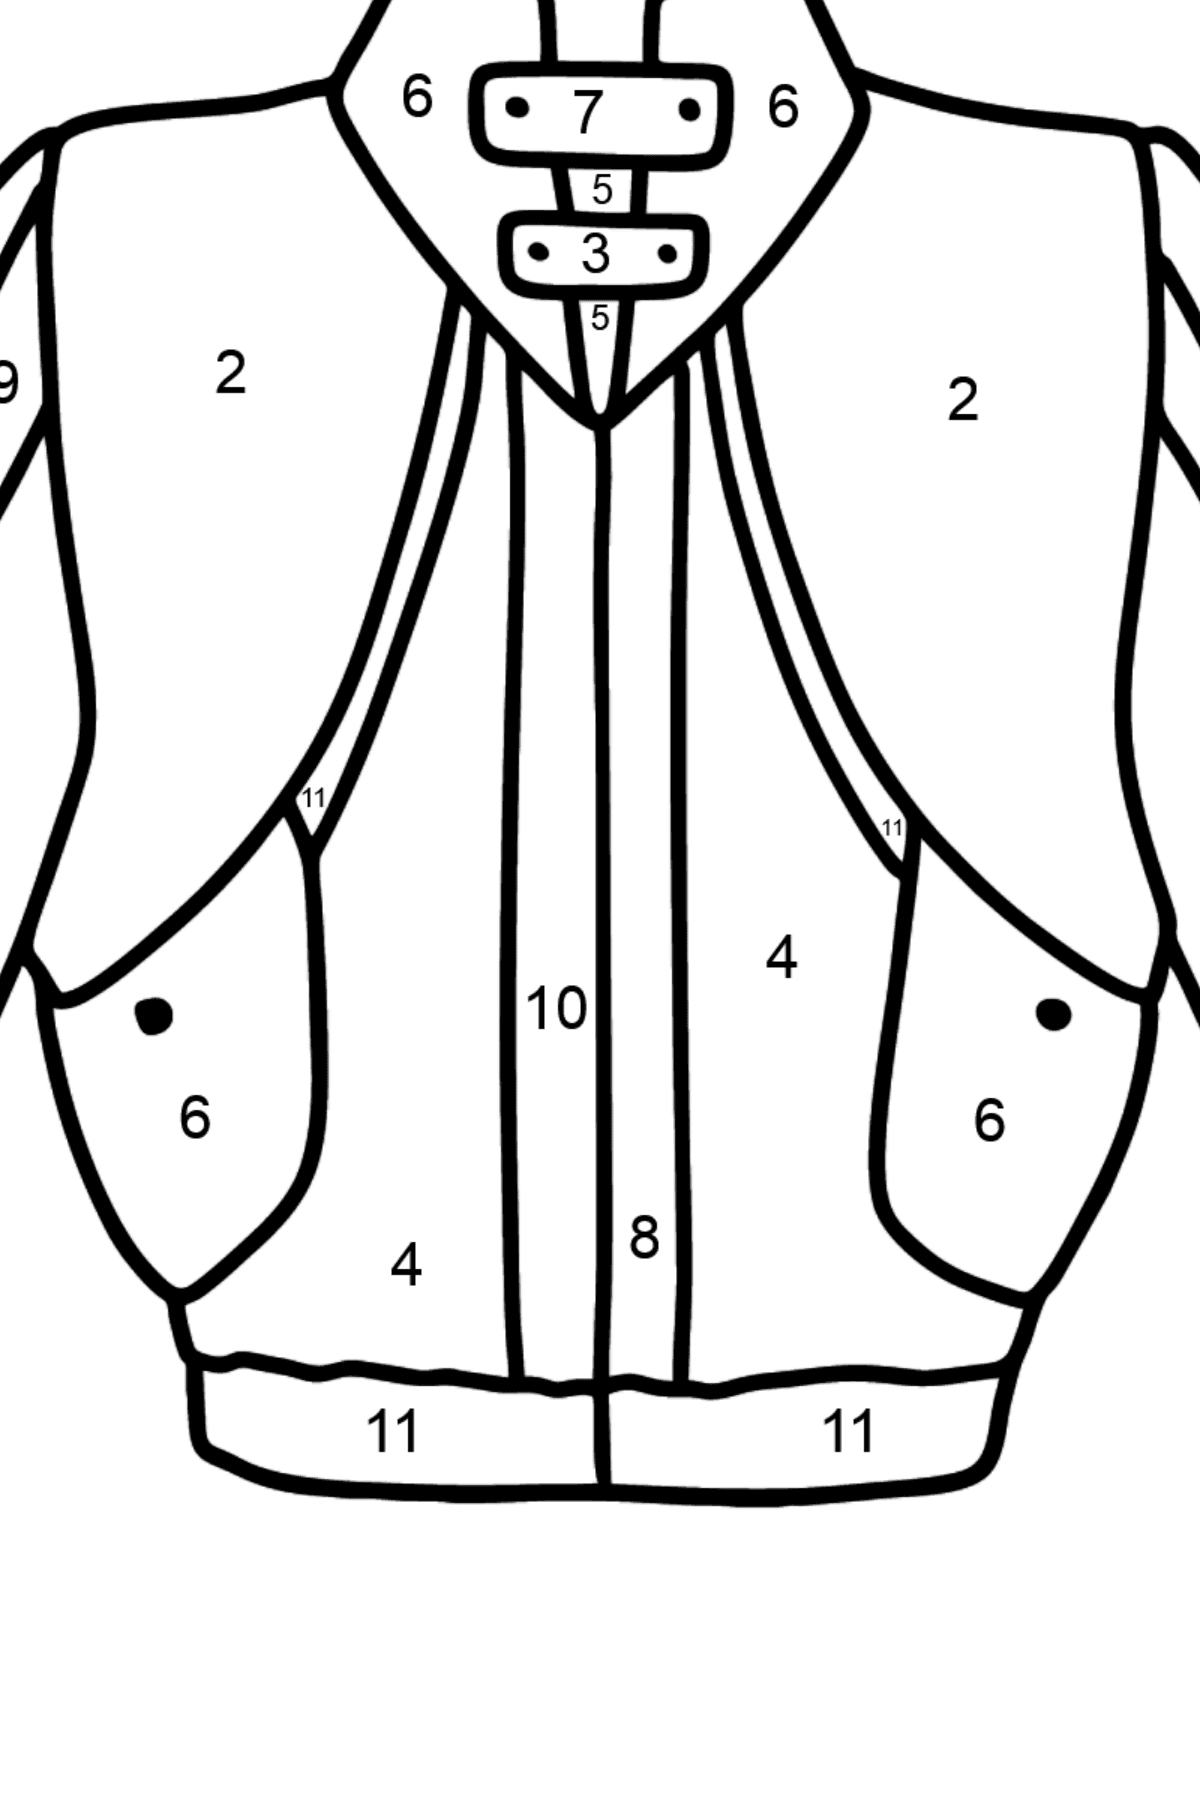 Jacket coloring page - Coloring by Numbers for Kids